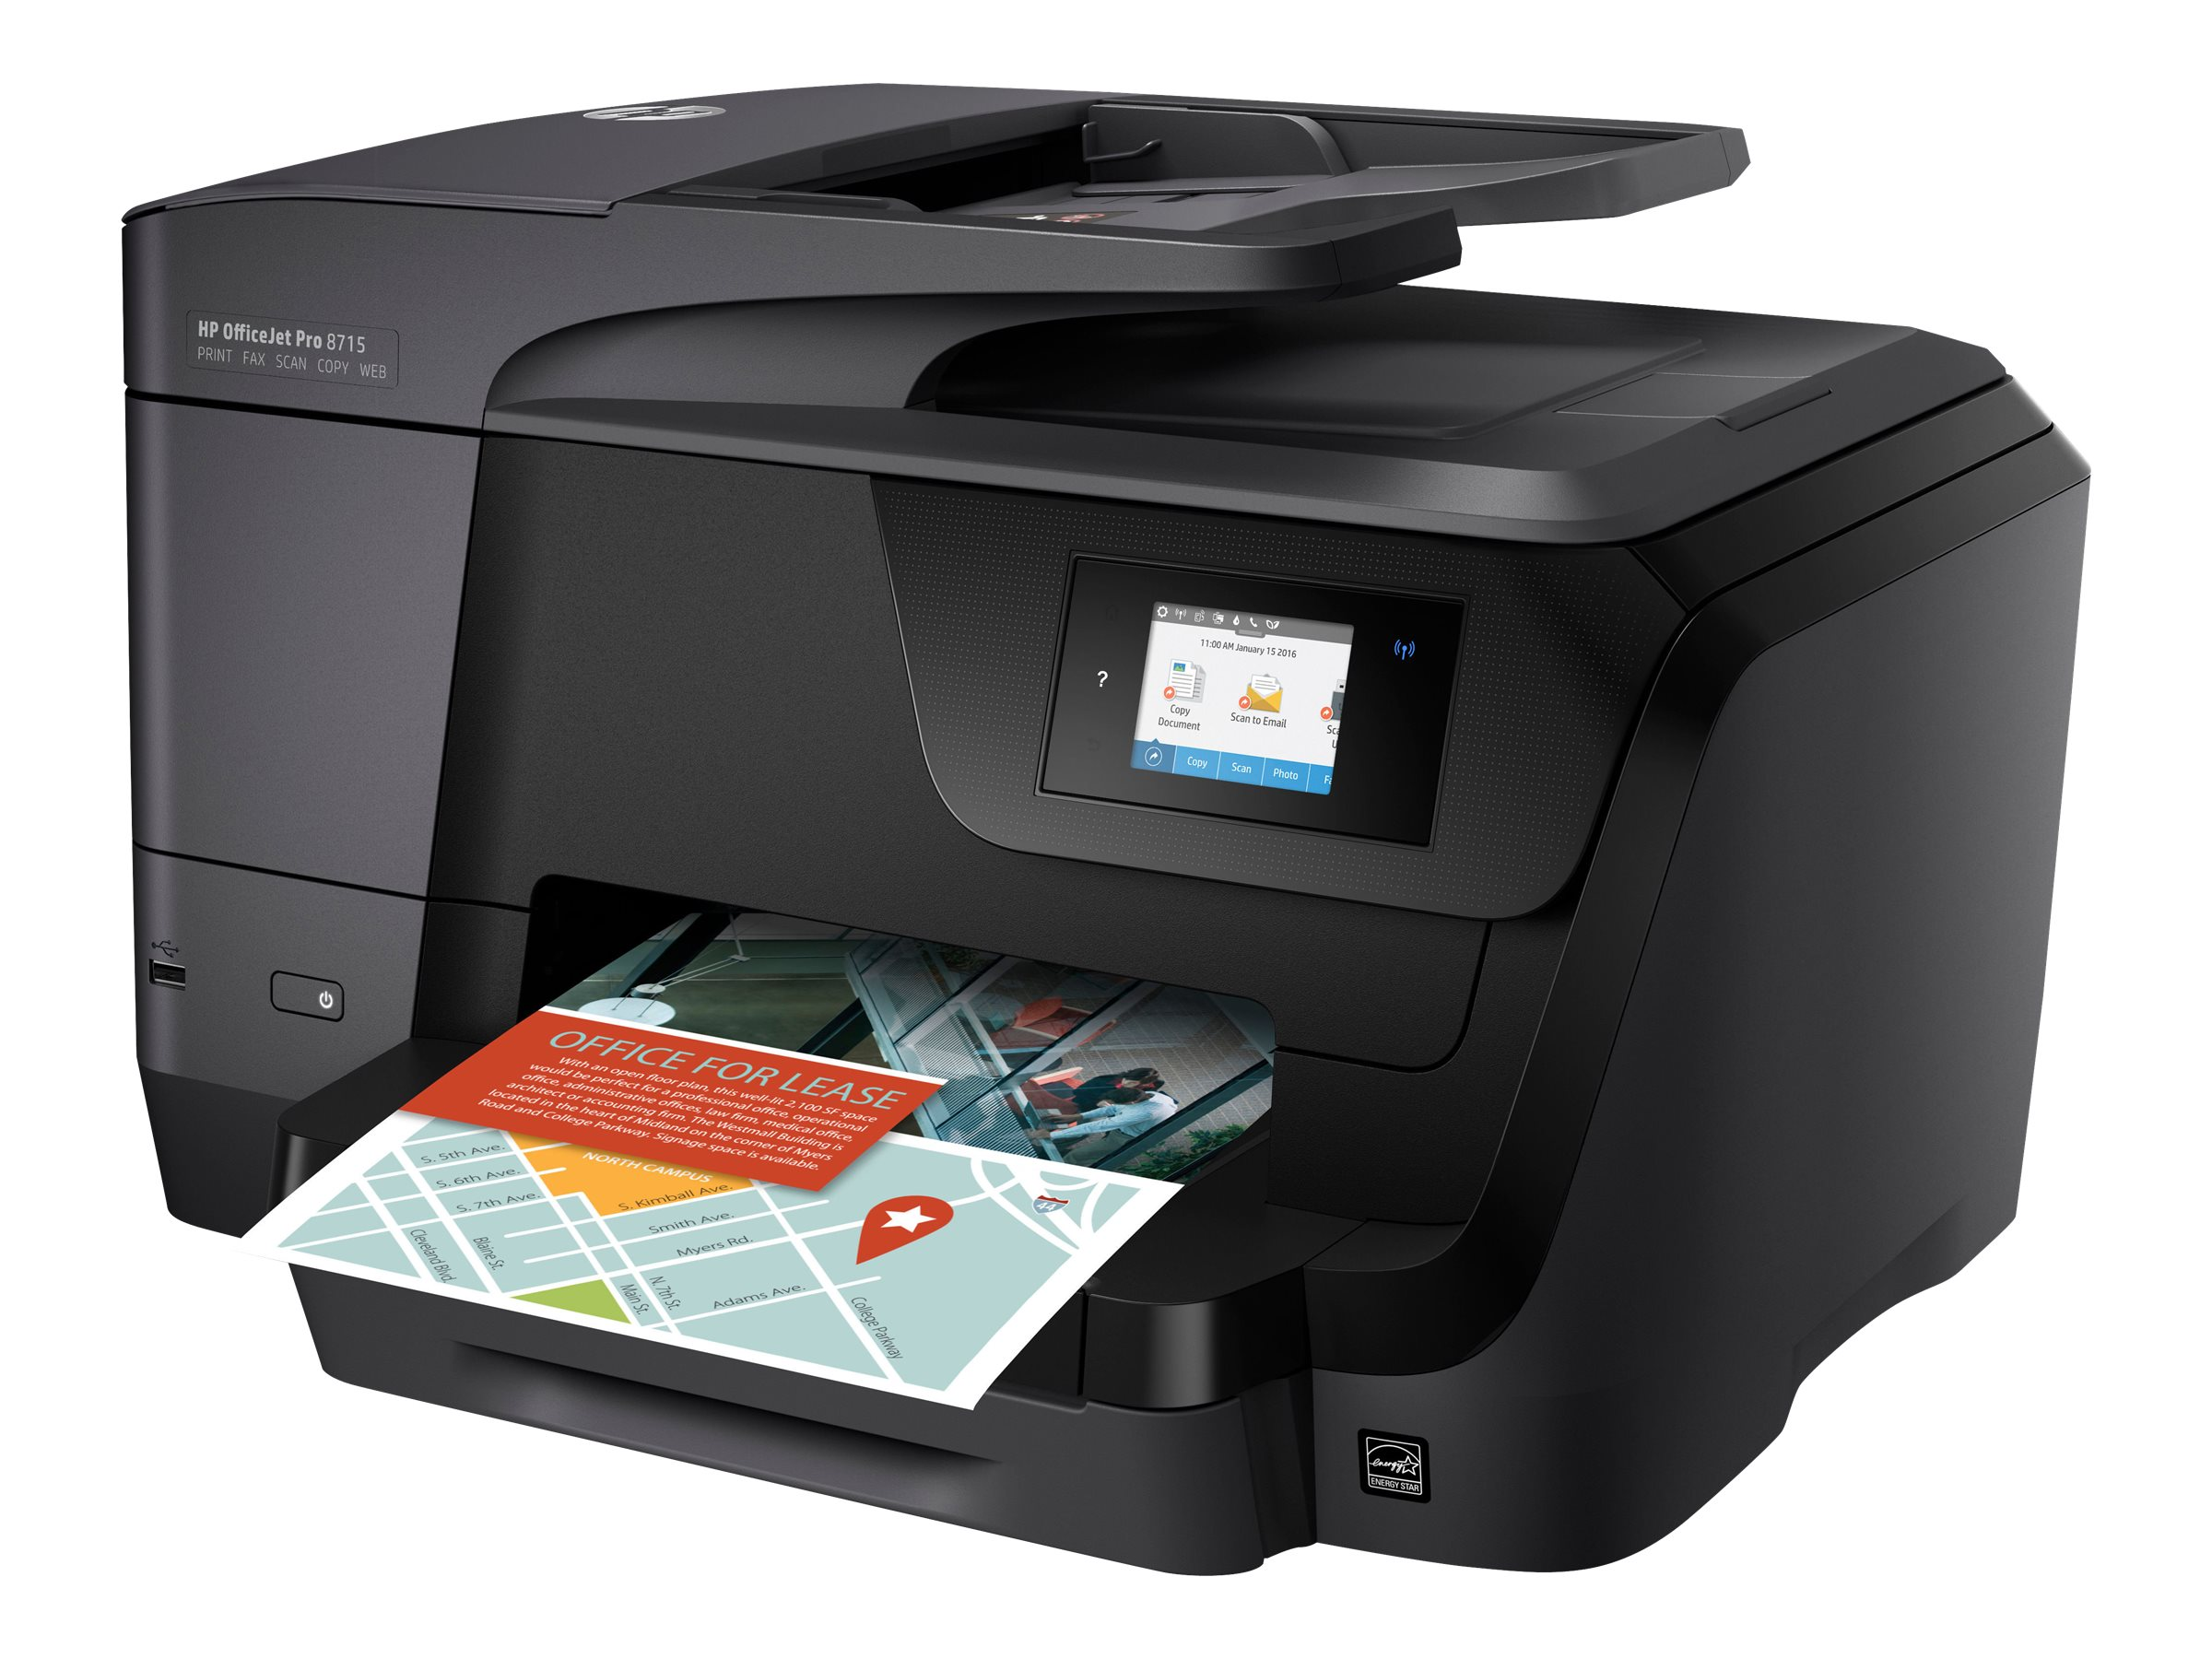 hp officejet pro 8715 all in one imprimante multifonctions couleur jet d 39 encre. Black Bedroom Furniture Sets. Home Design Ideas